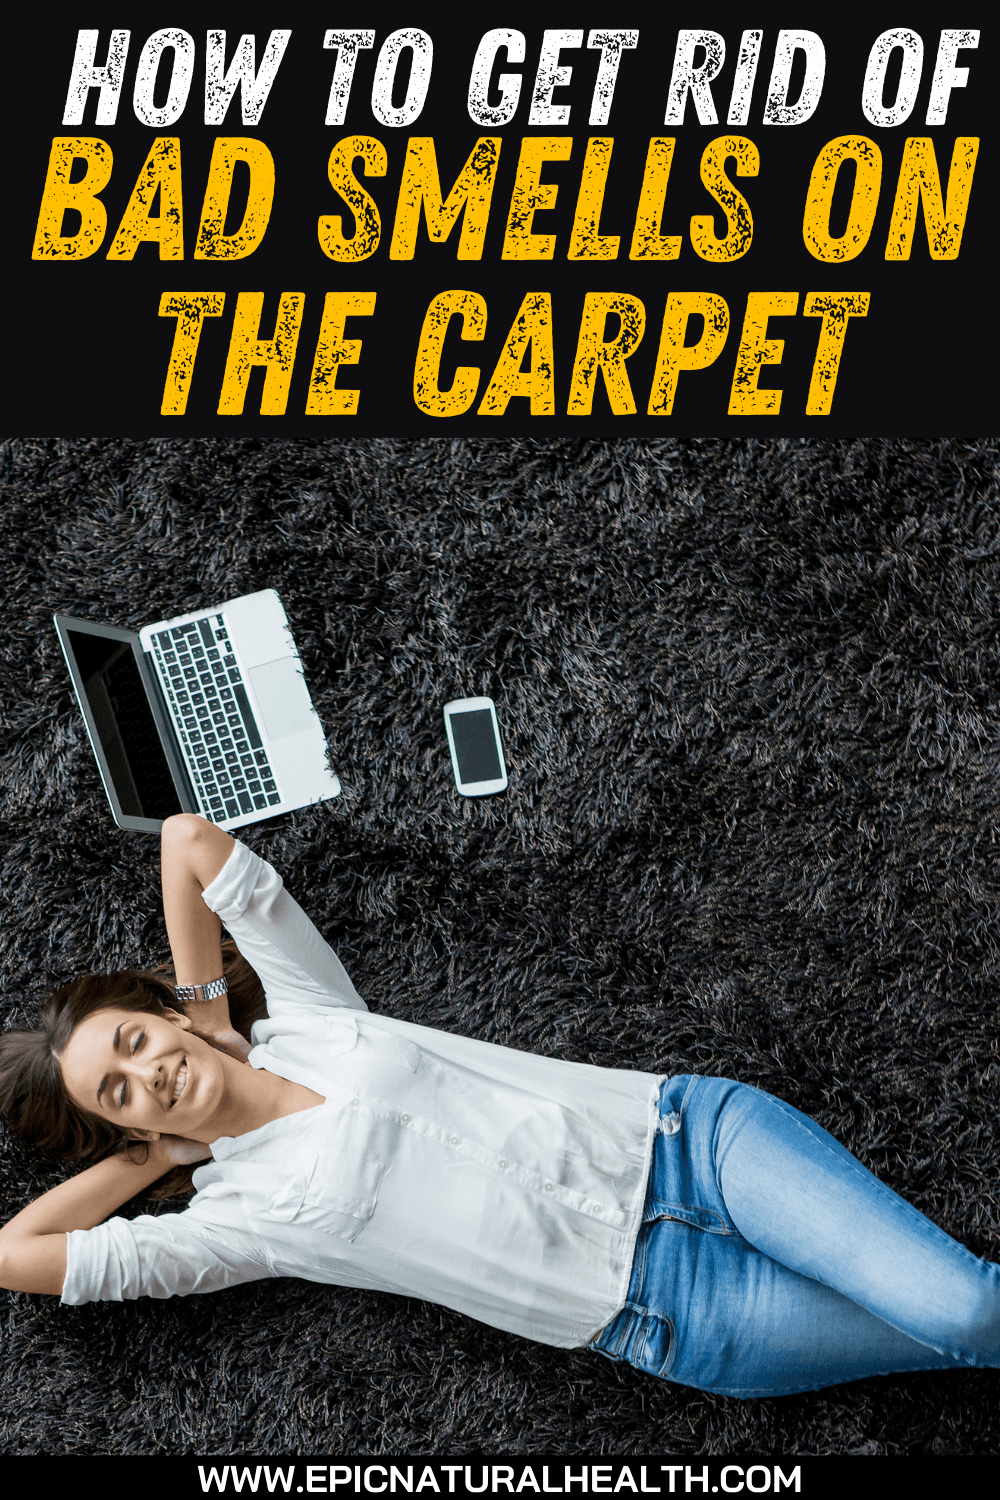 How to get rid of bad smells on carpet